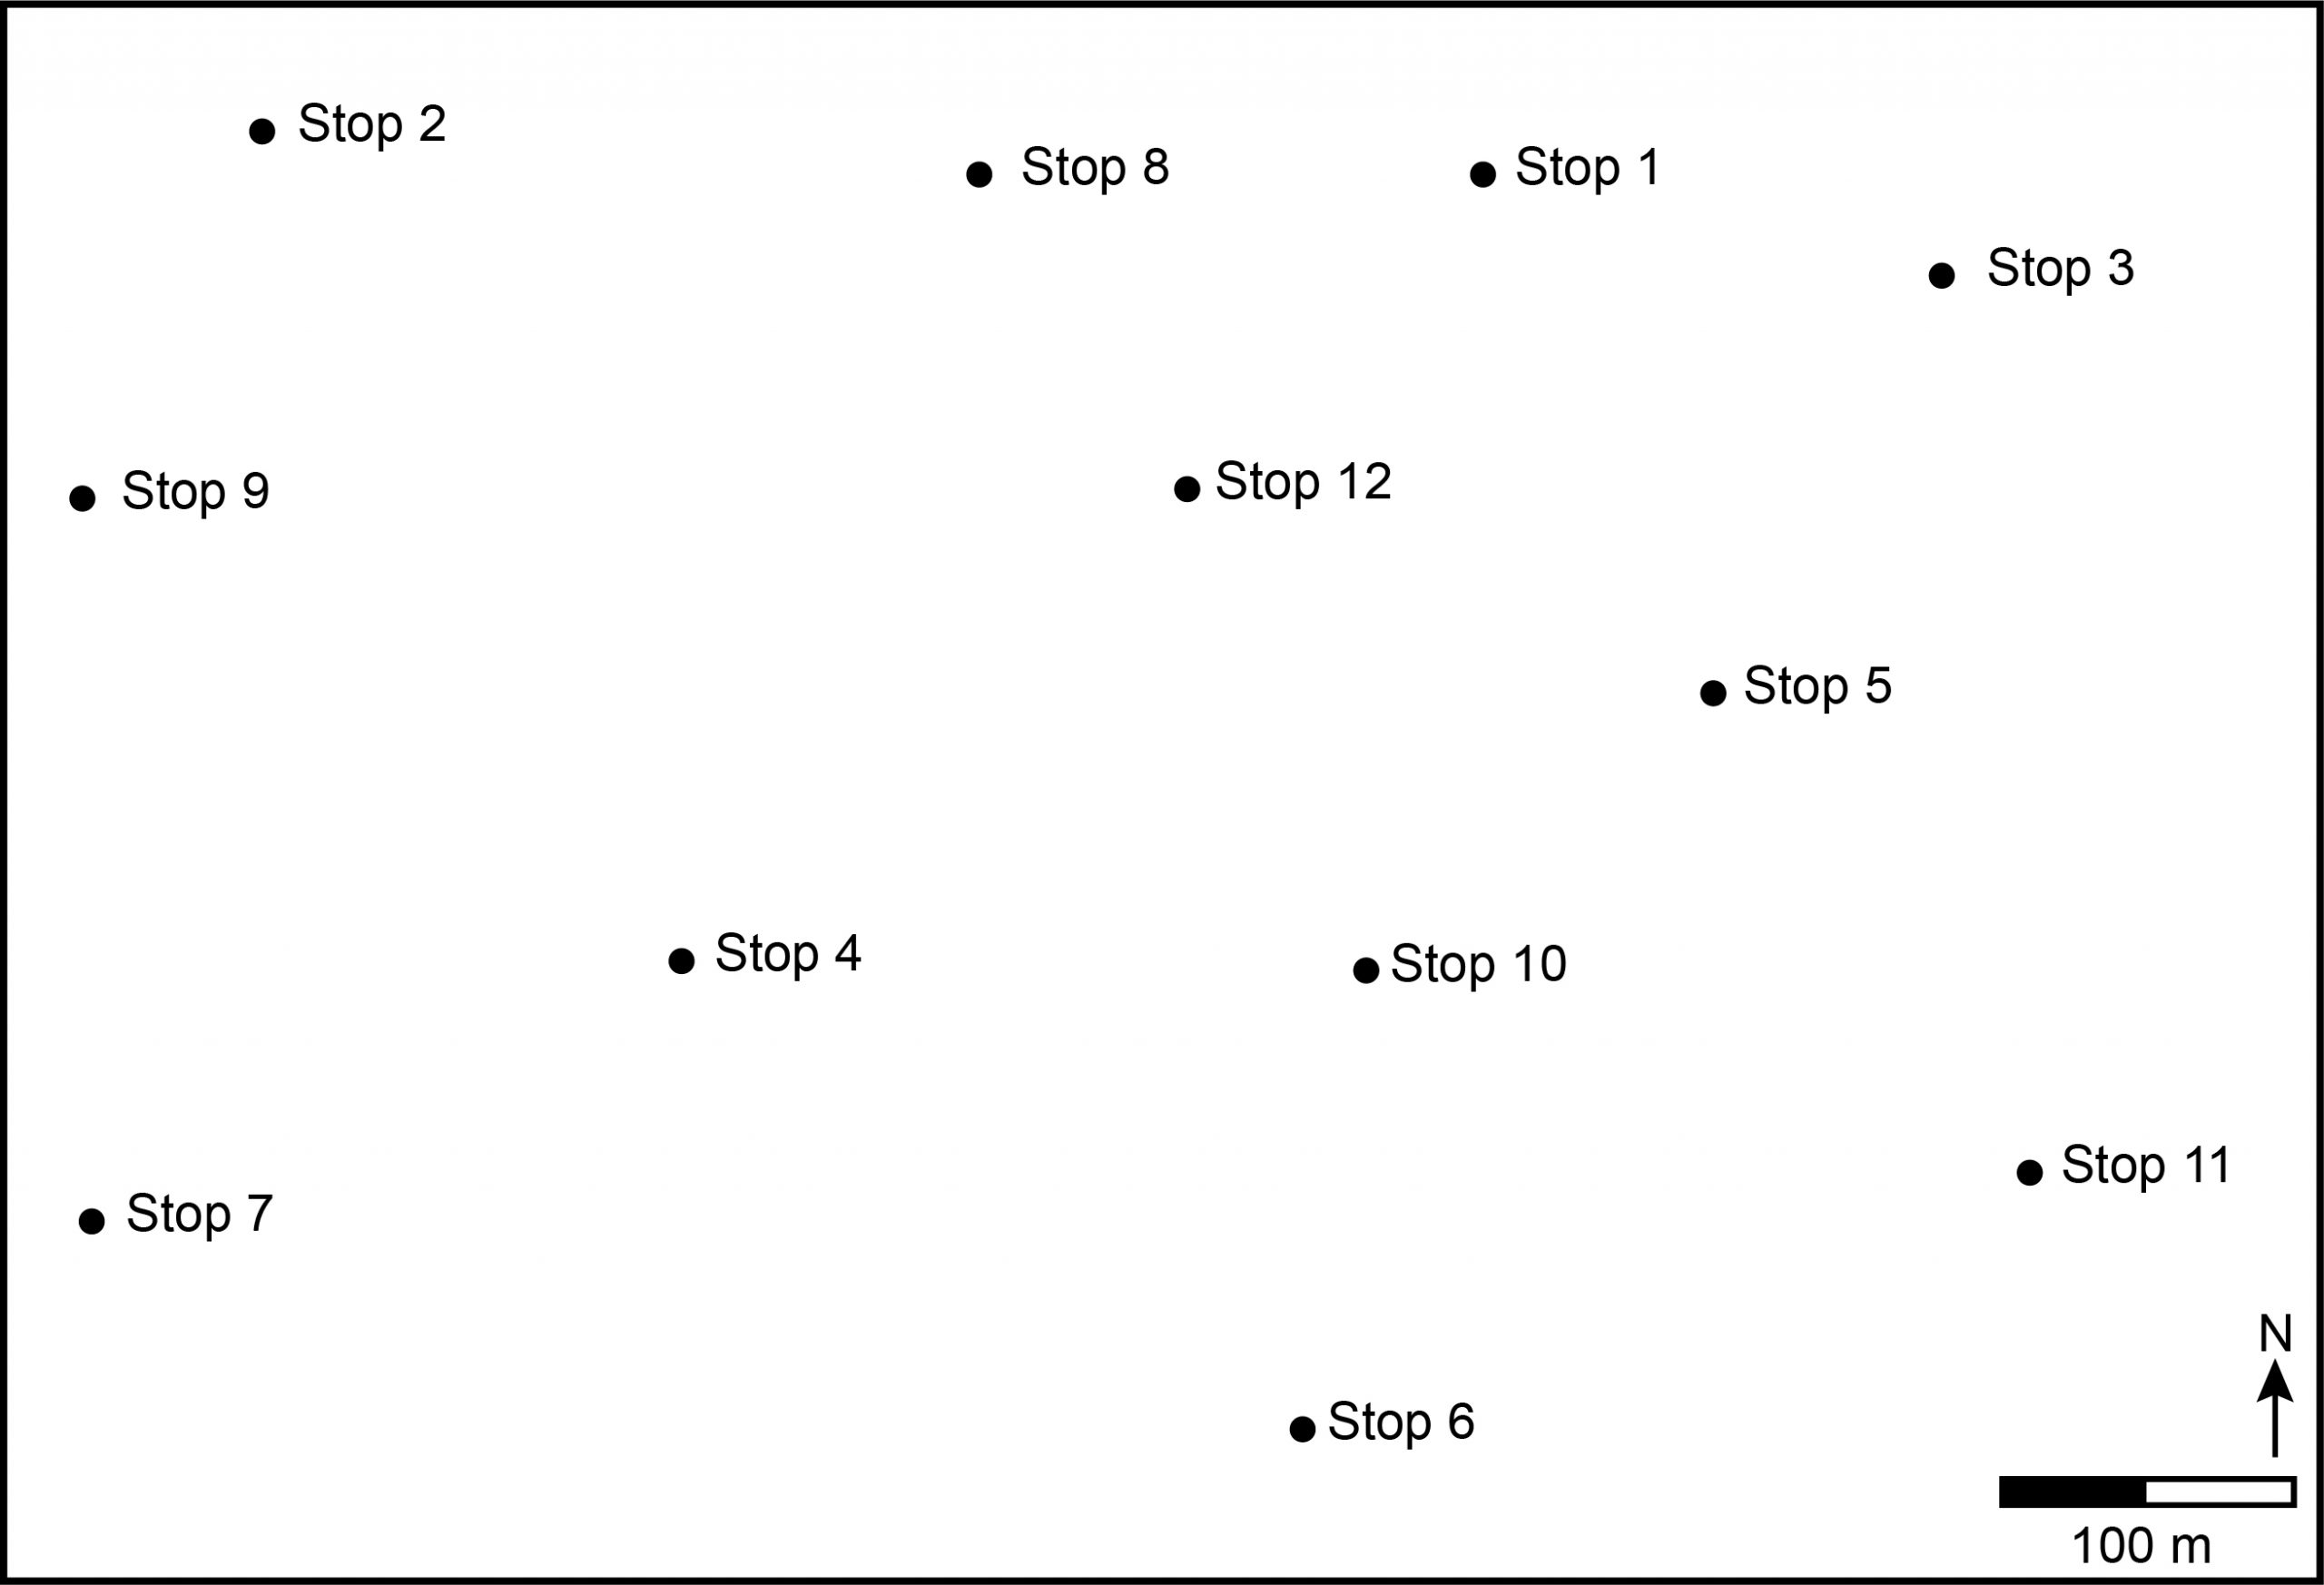 Location map for Stops 1-12 for this exercise